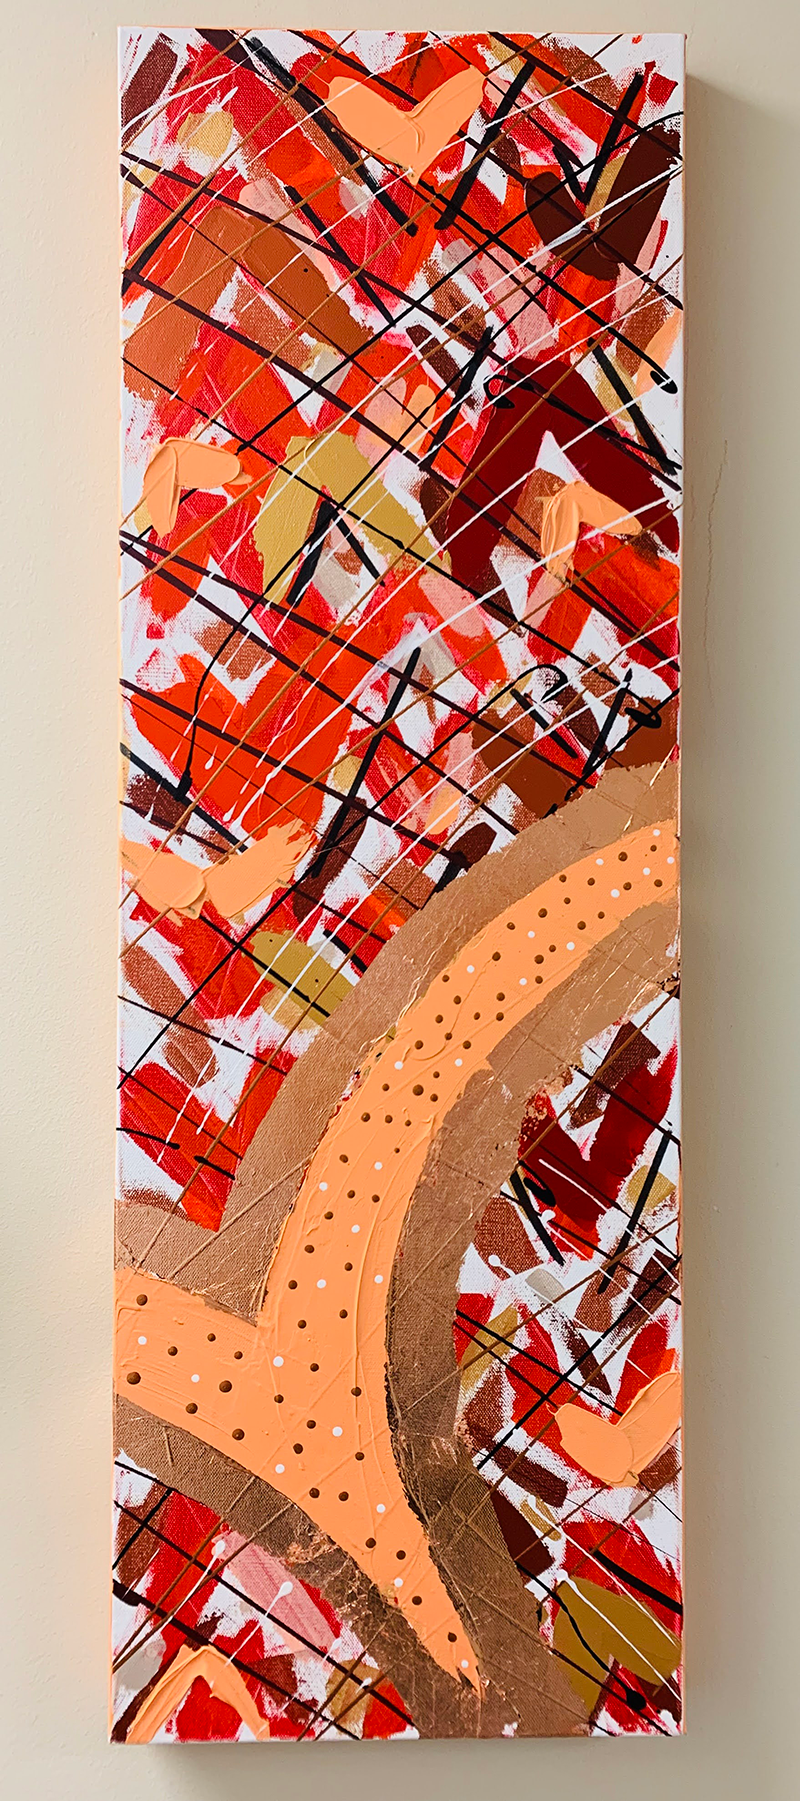 A long vertical abstract painting.